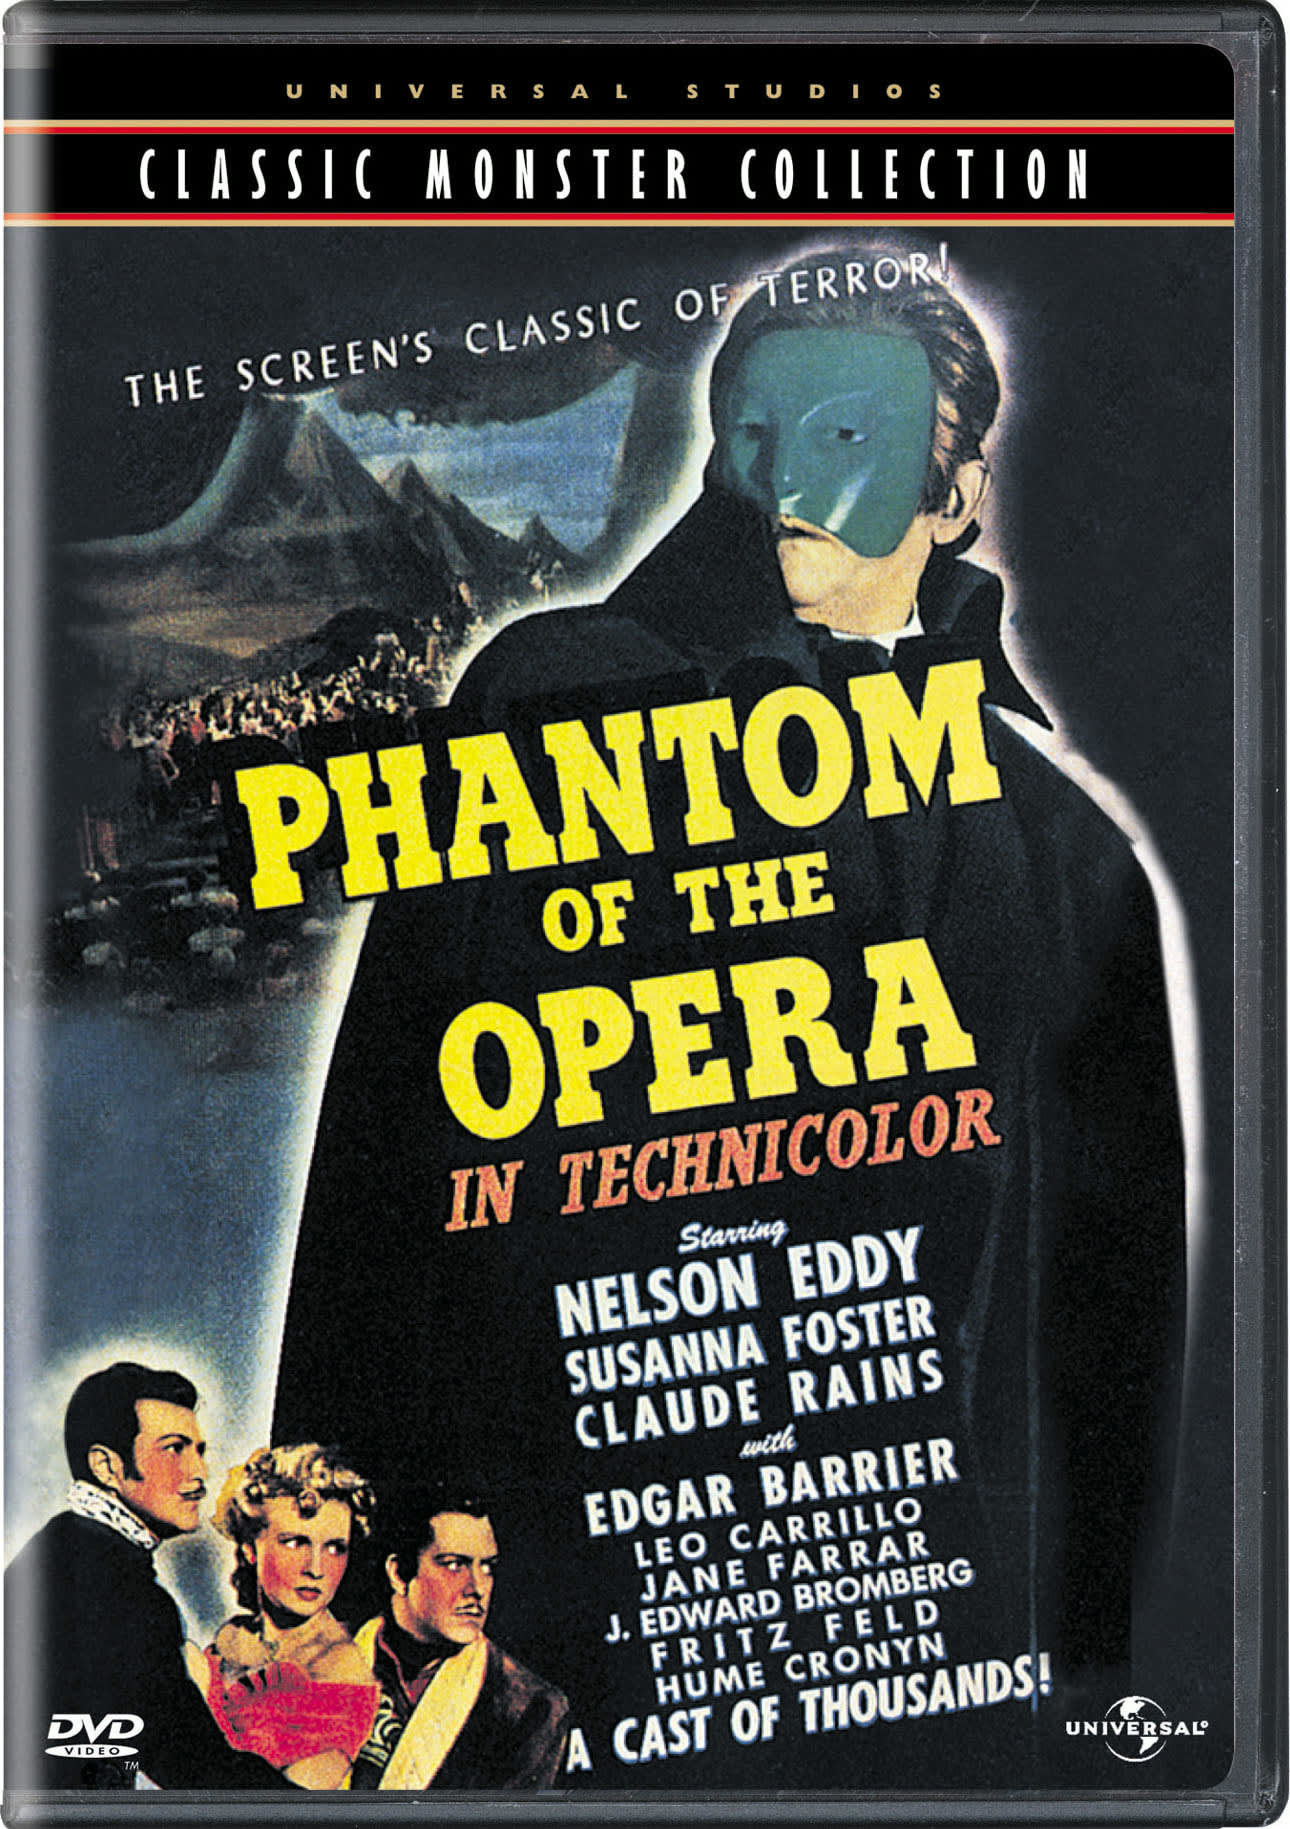 The Phantom of the Opera (1943) (Universal Classic Monster Collection) [DVD]